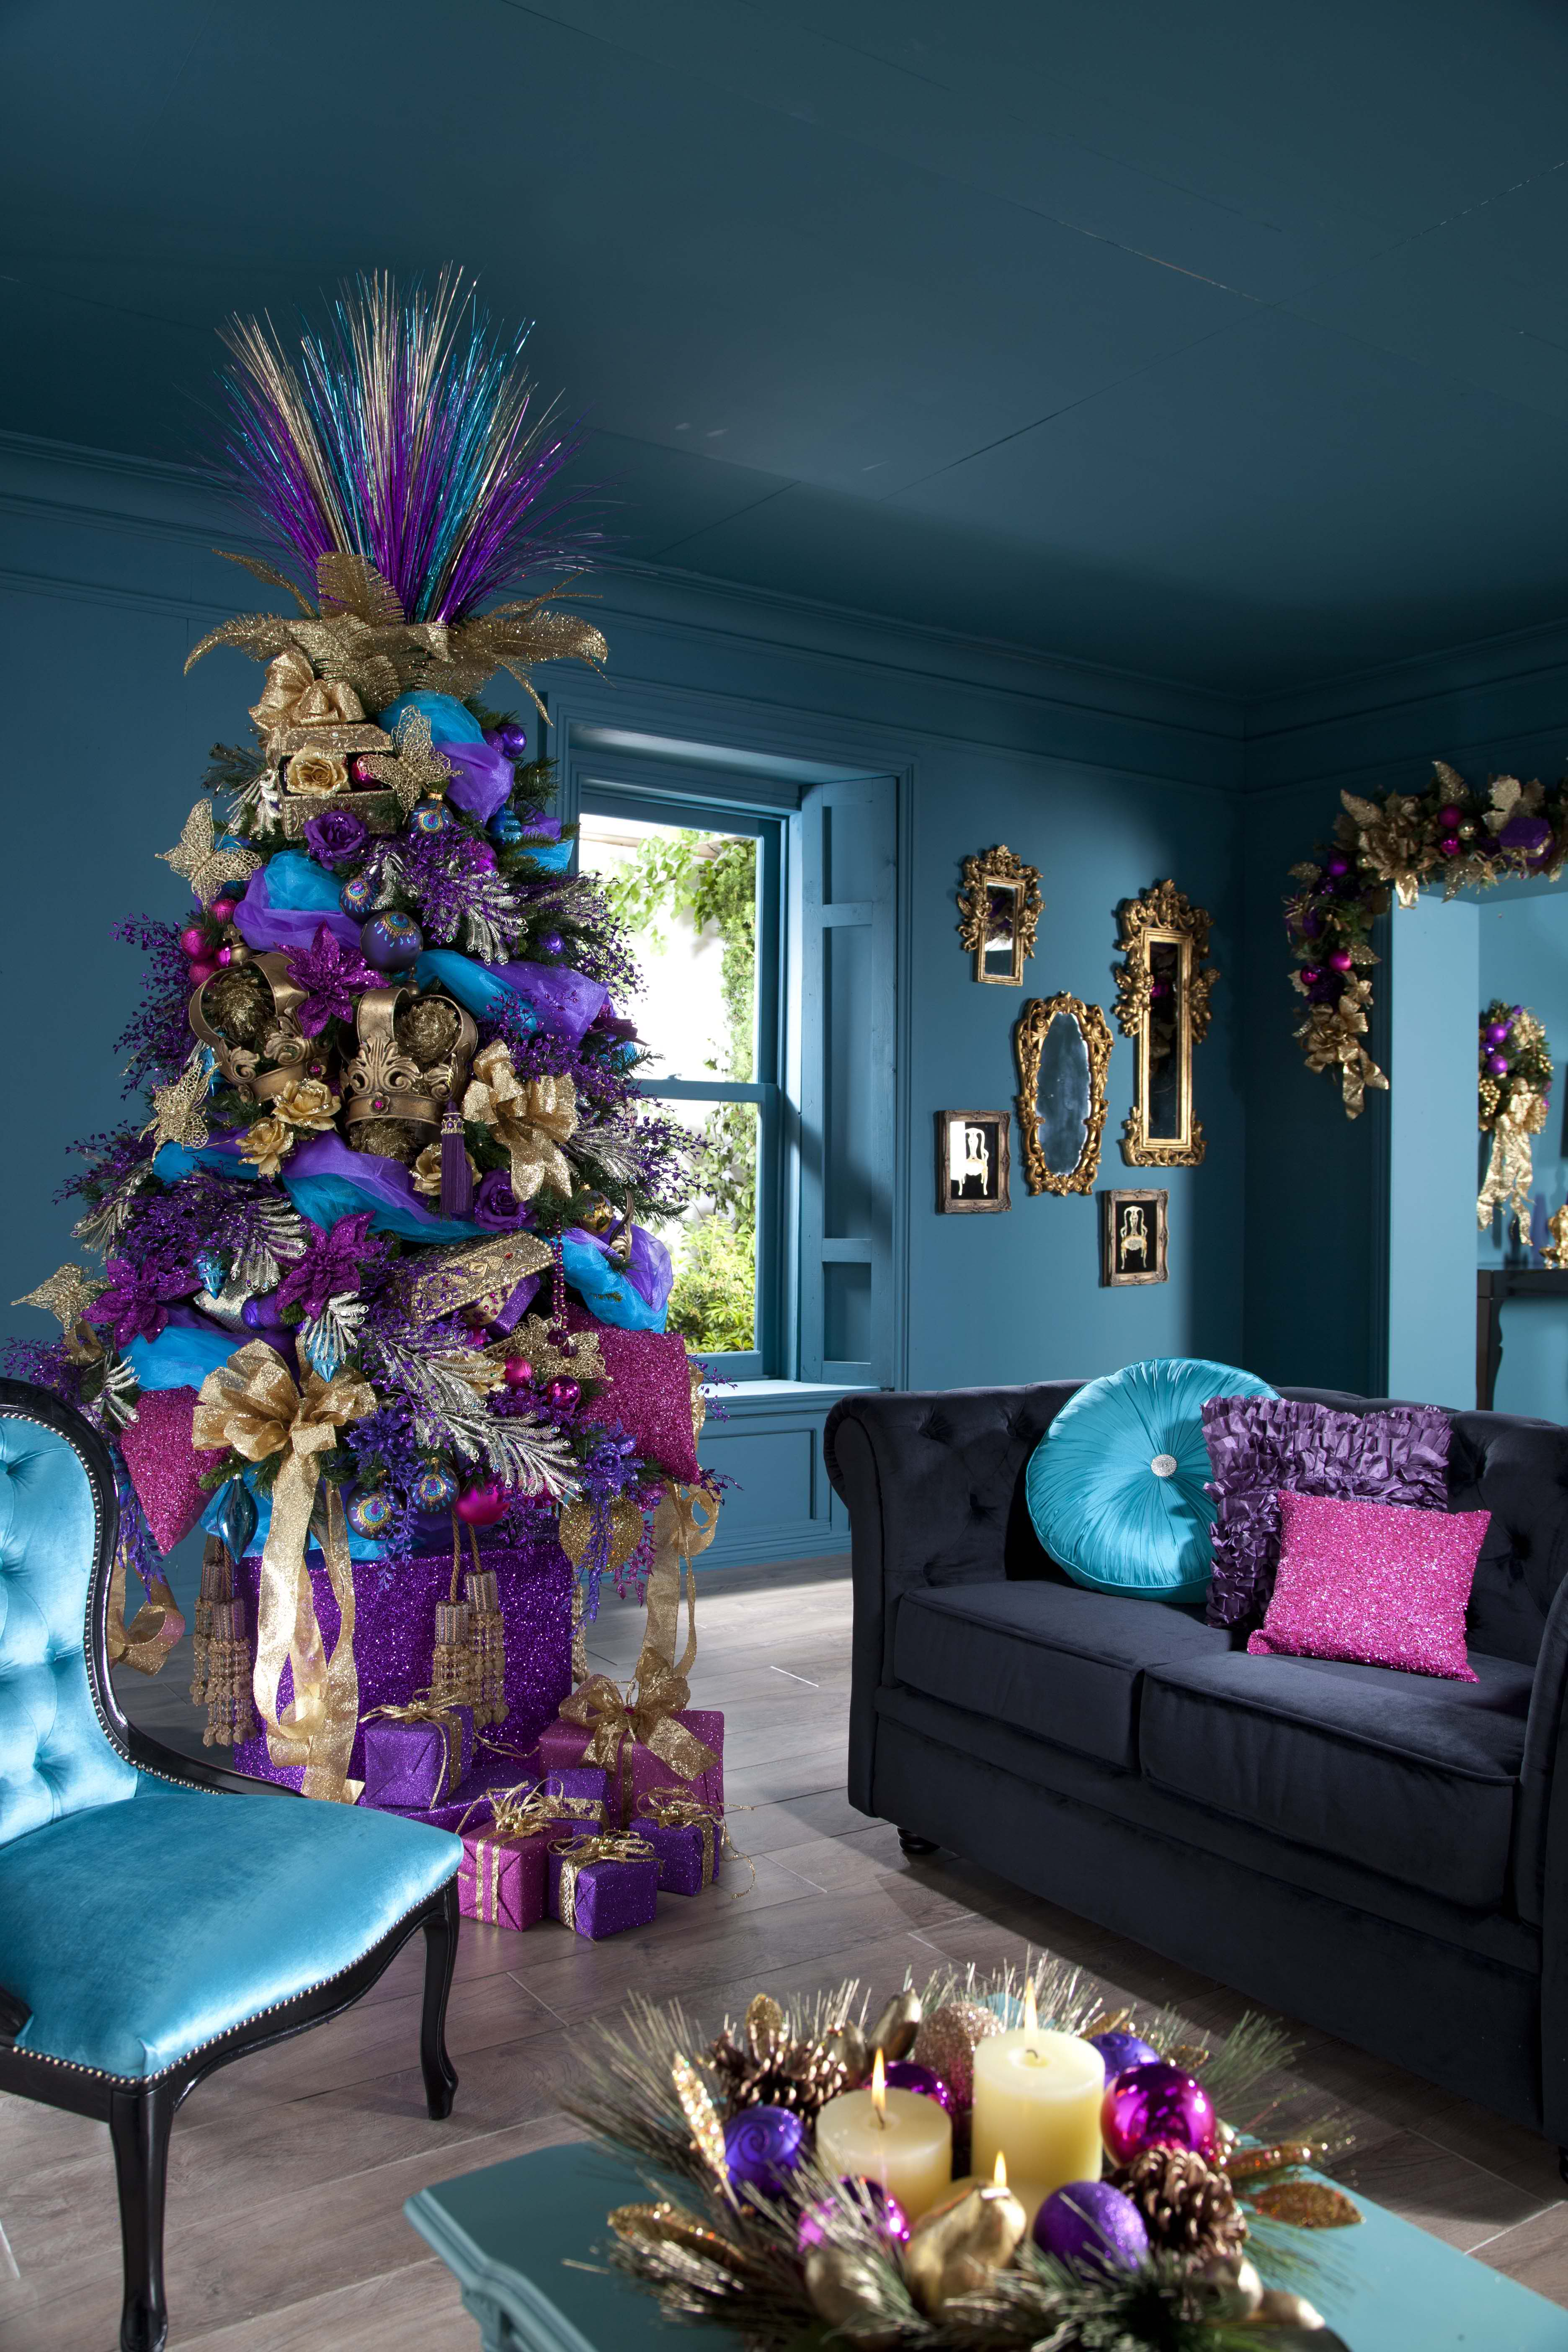 37 inspiring christmas tree decorating ideas decoholic Ideas for decorating a christmas tree